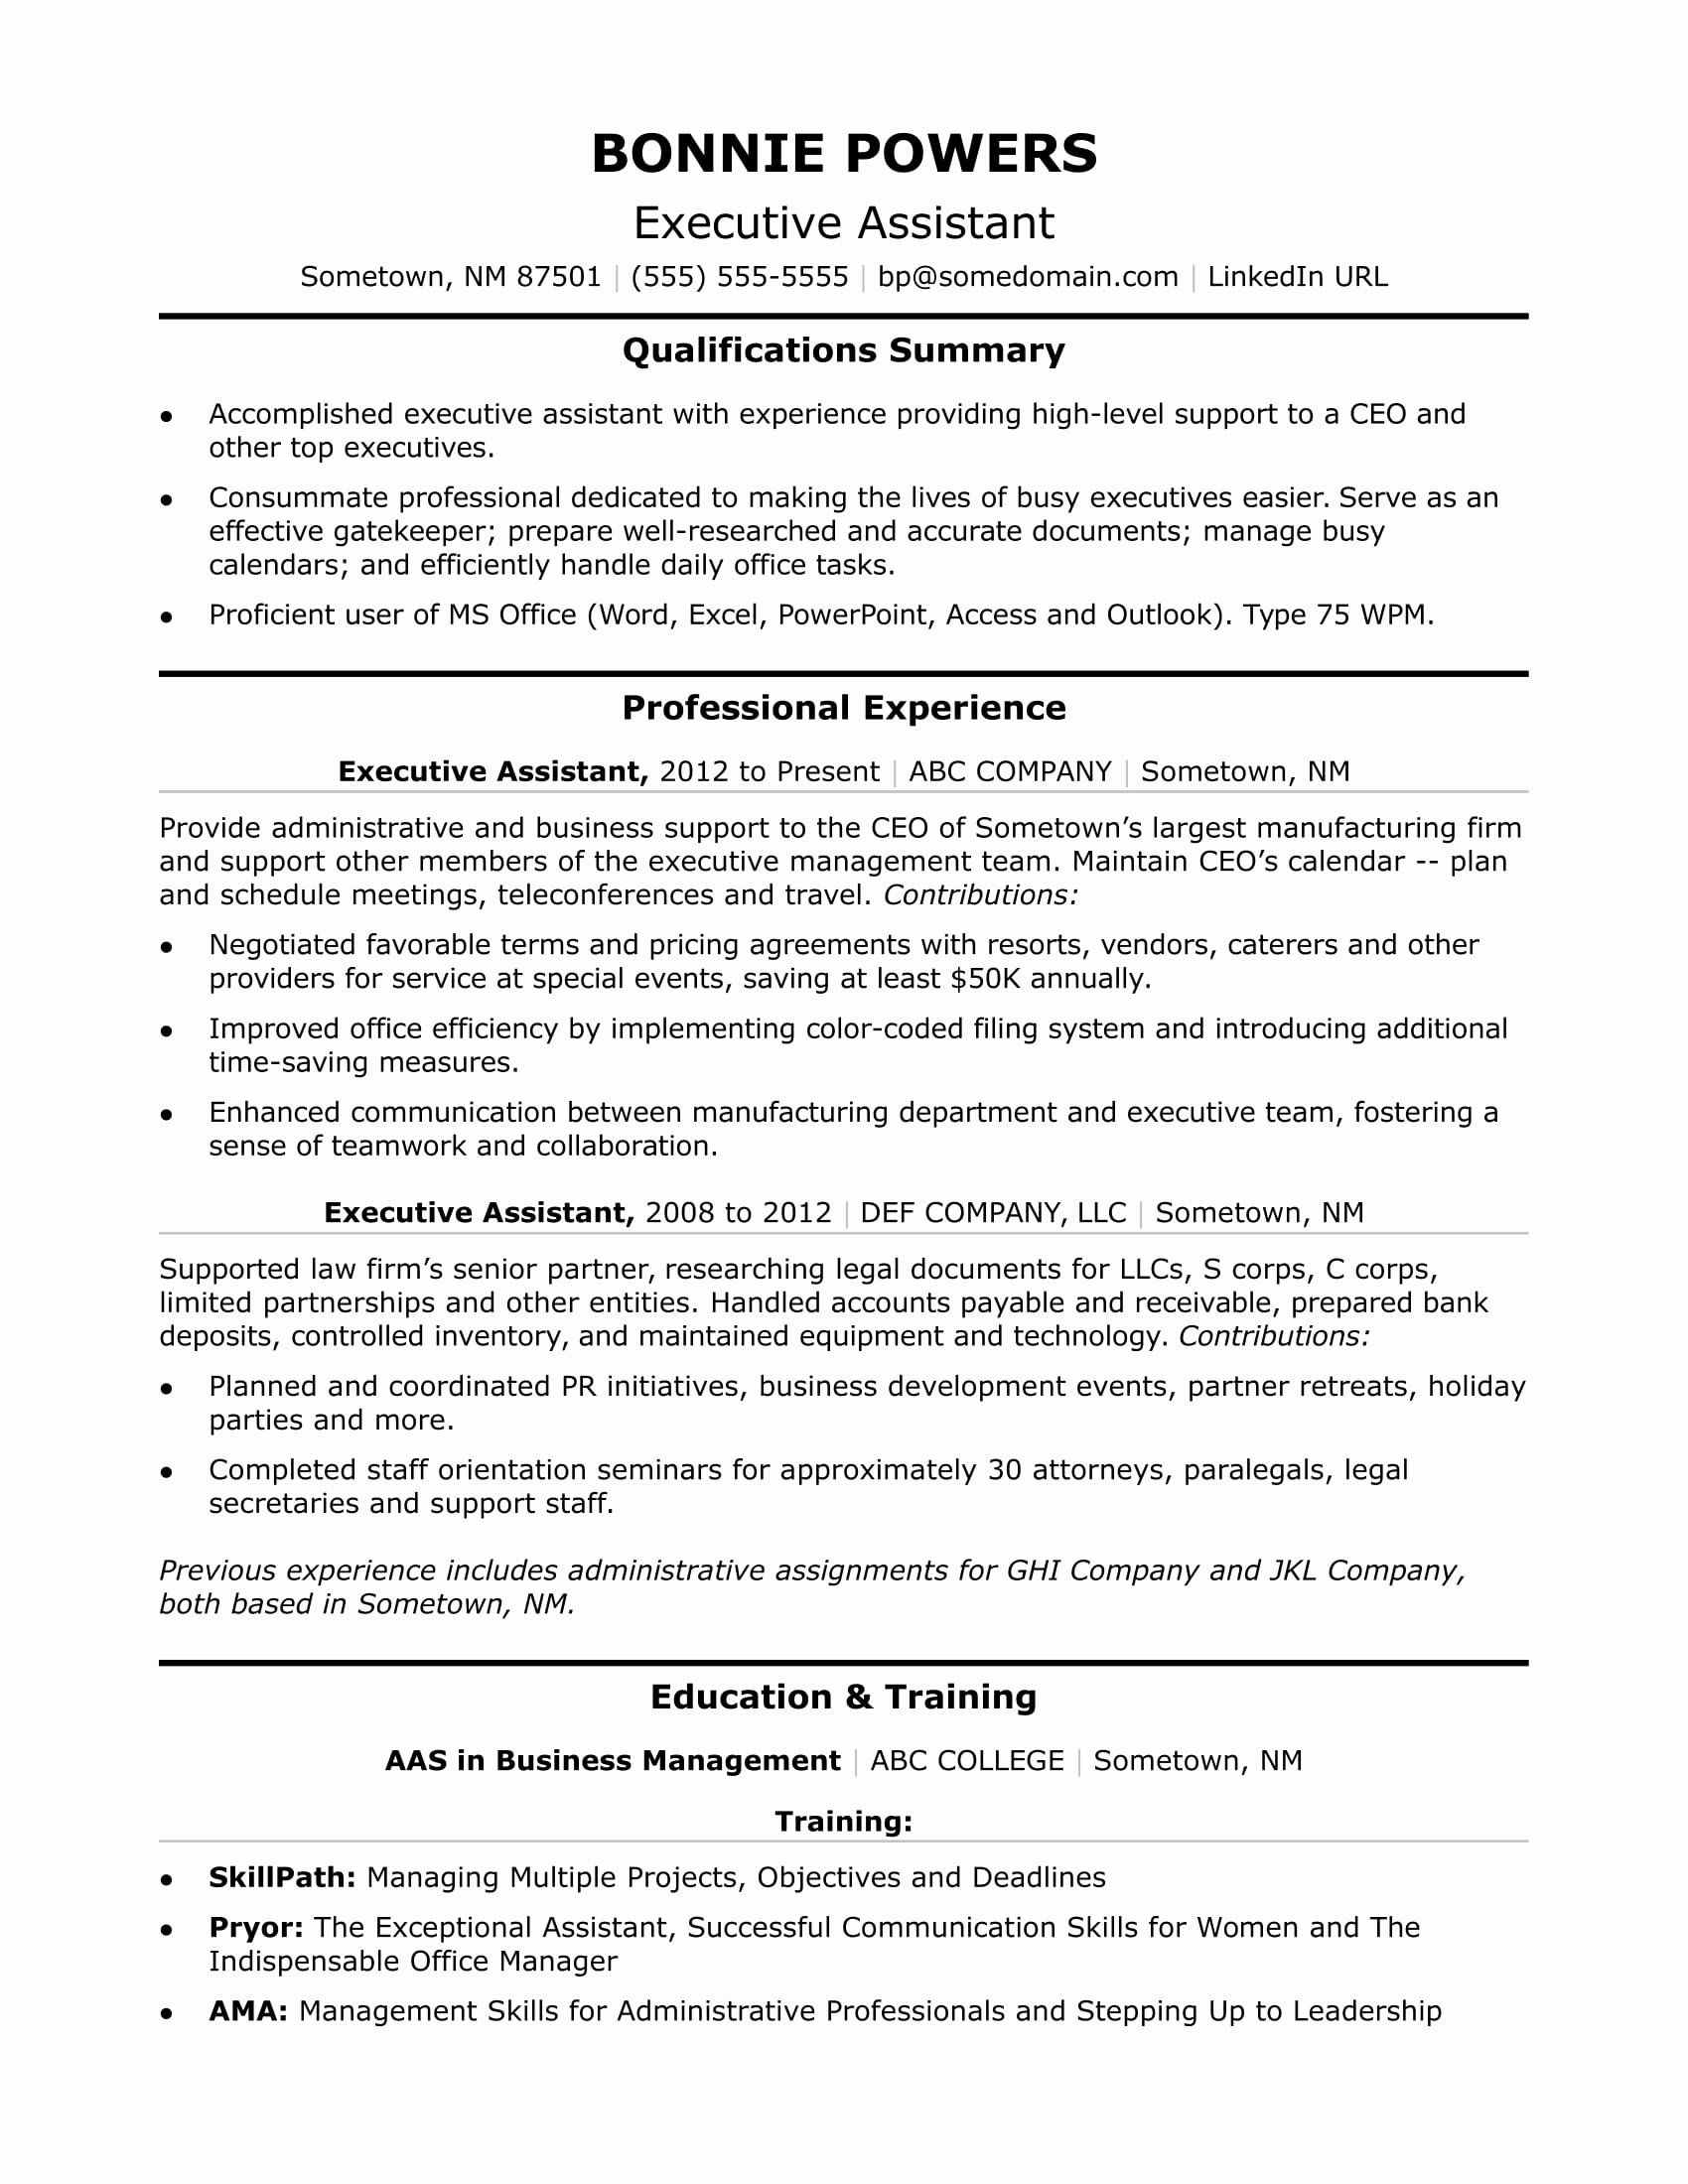 personal assistant resume summary samples